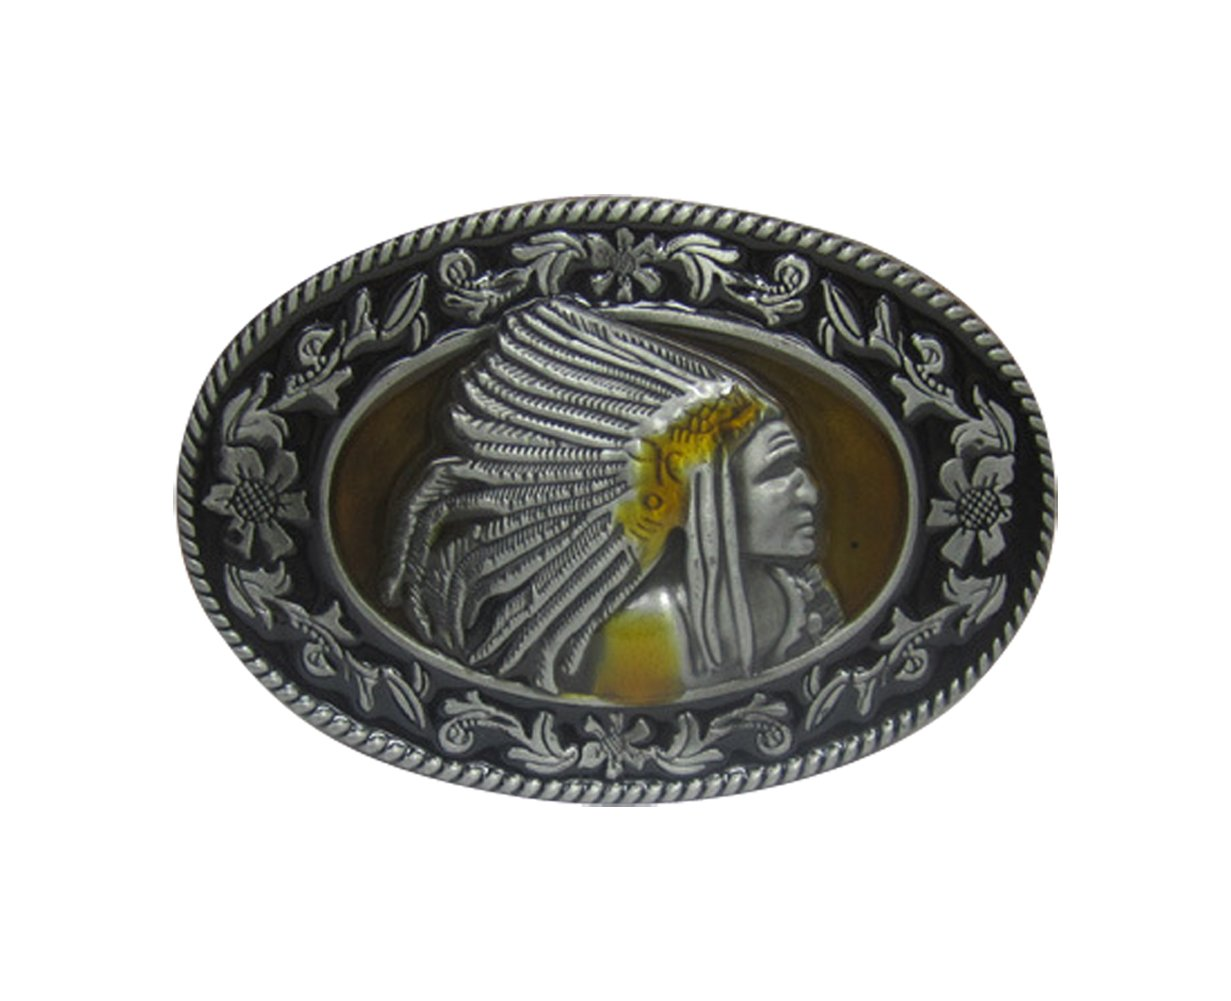 E-Clover Vintage American Indian Head Buckle Cowboy Oval Western Belt Buckle 0